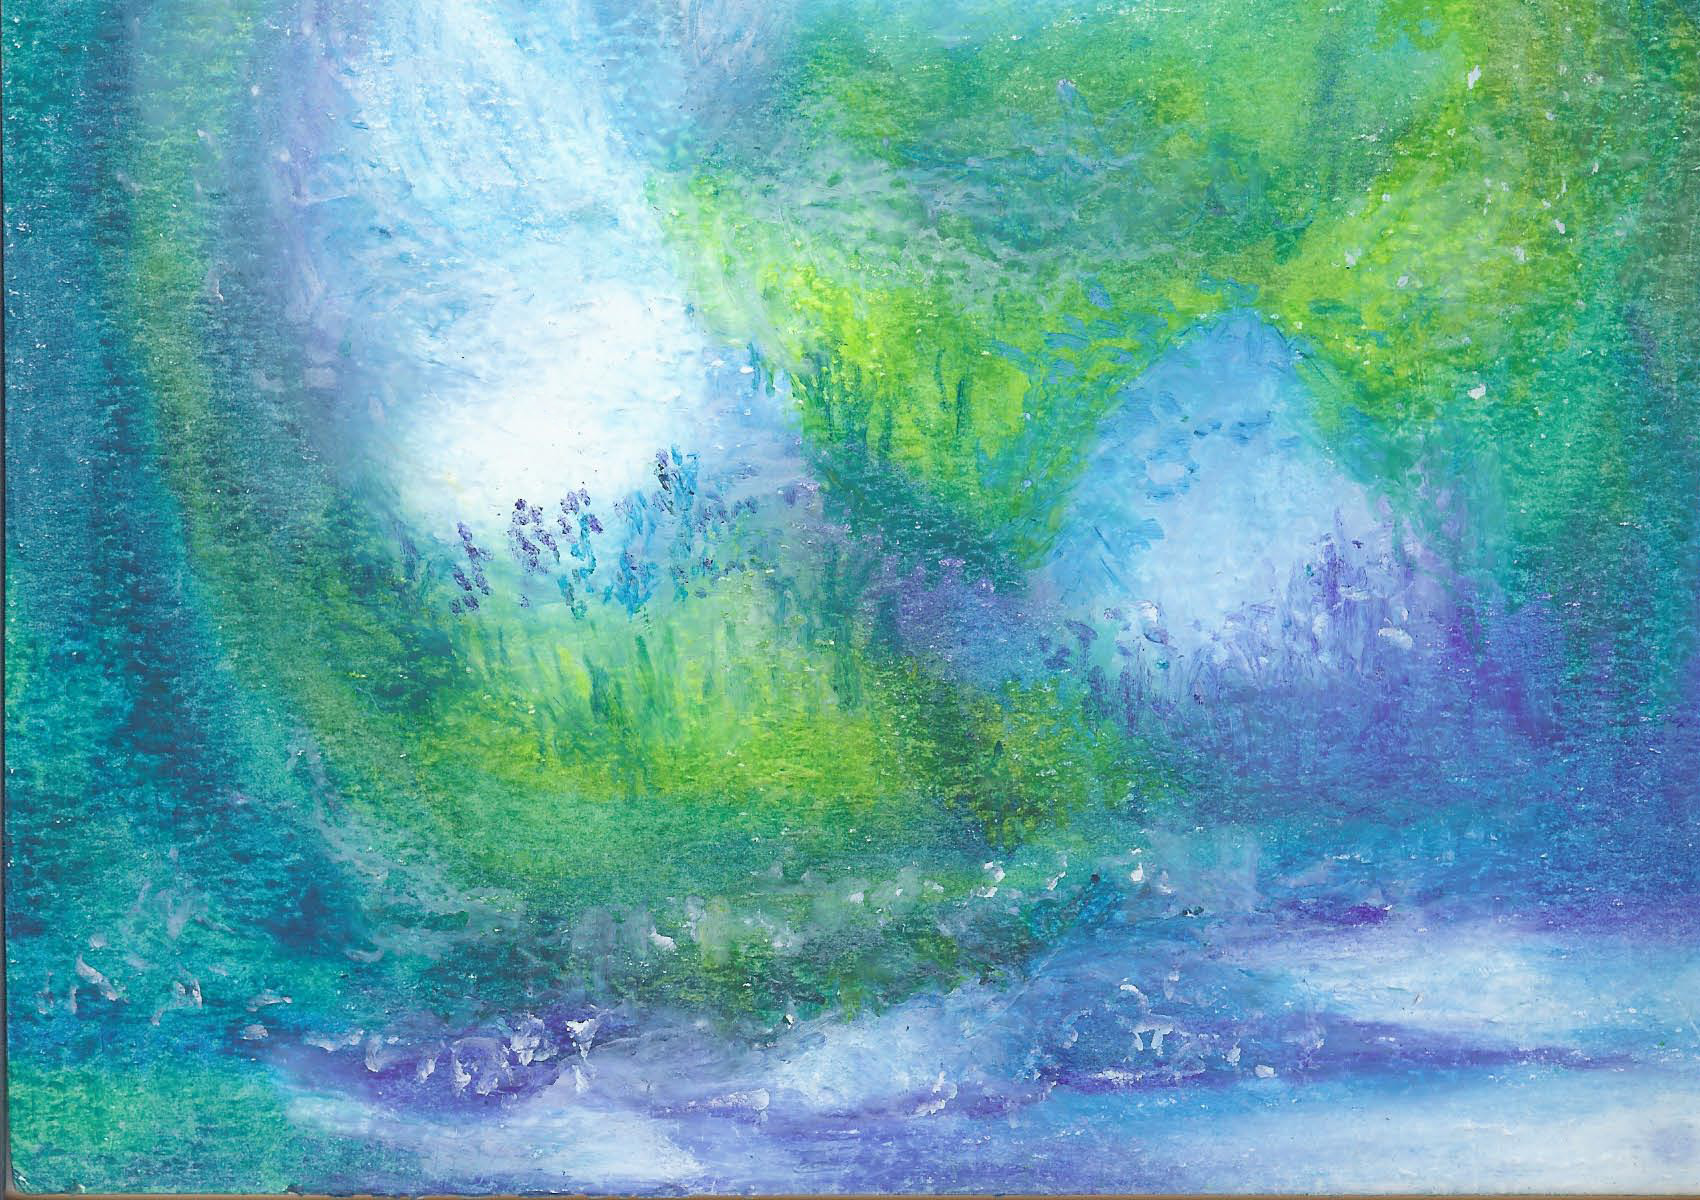 Fairy Land - Oil Pastel 8 X 9 - $85